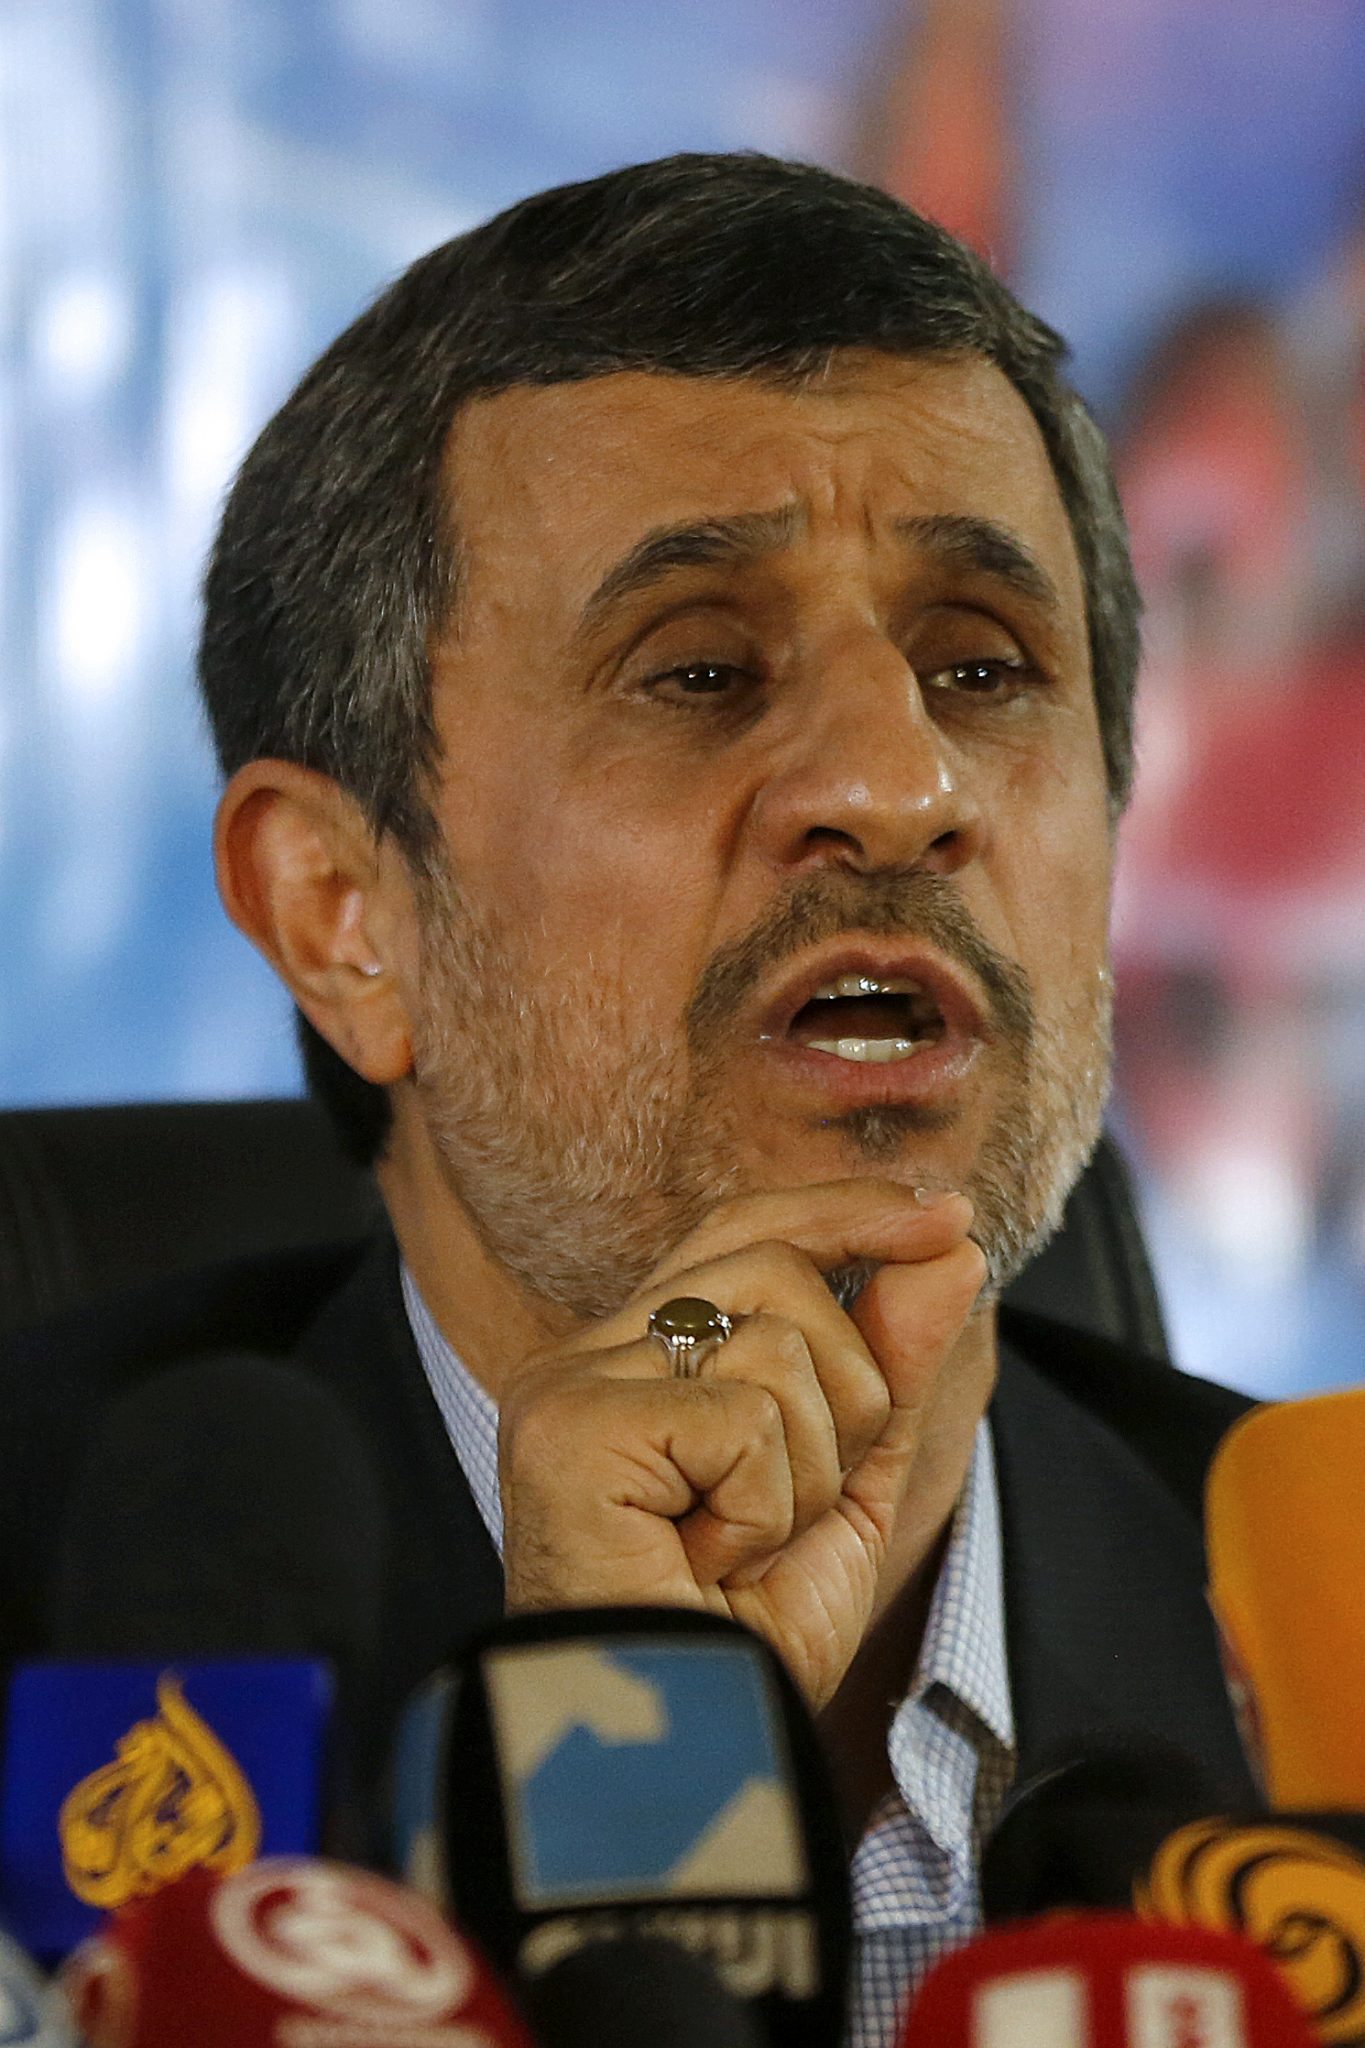 from Emanuel iranian president speaks about gays